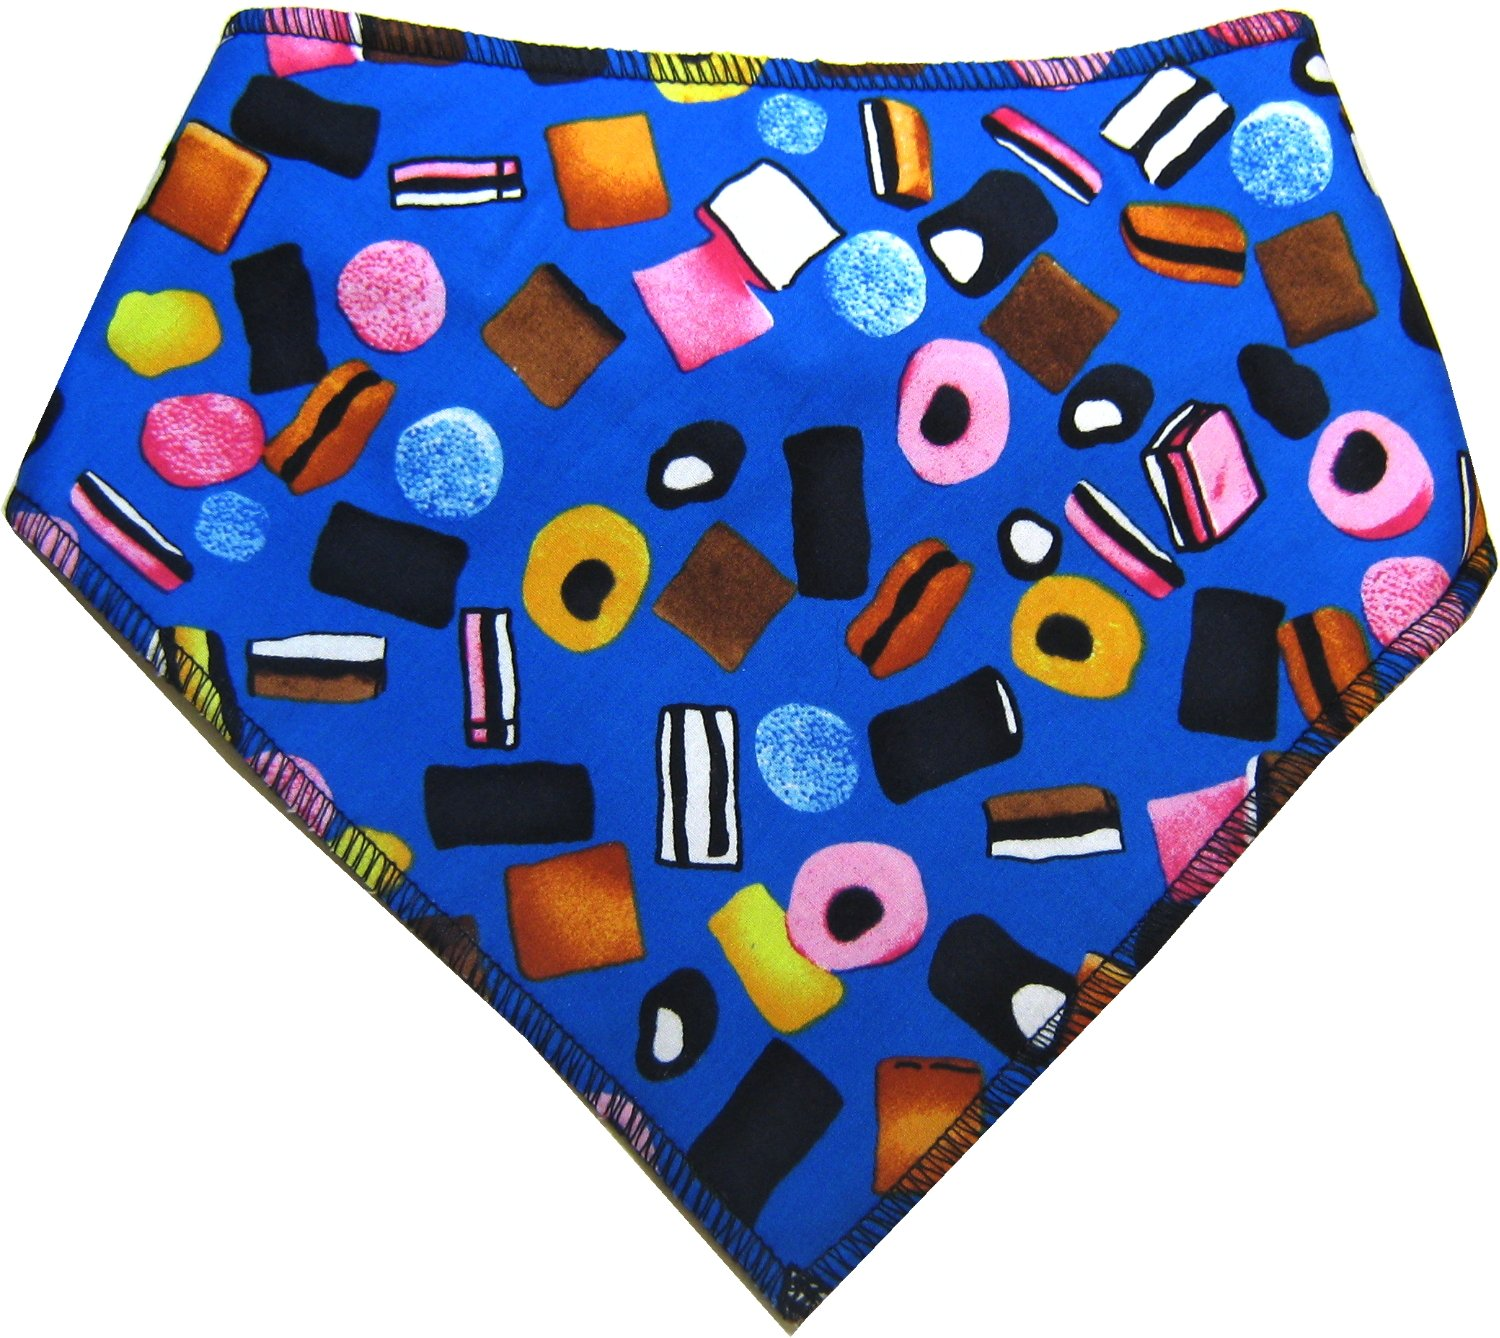 Spoilt Rotten Pets (S4 Liquorice Allsorts Purple Bandana. Large Size Generally Fits Rottweilers and St Bernard Sized Dogs. Neck Size 23″ to 28″ Gorgeous Range of Patterns & Colours.